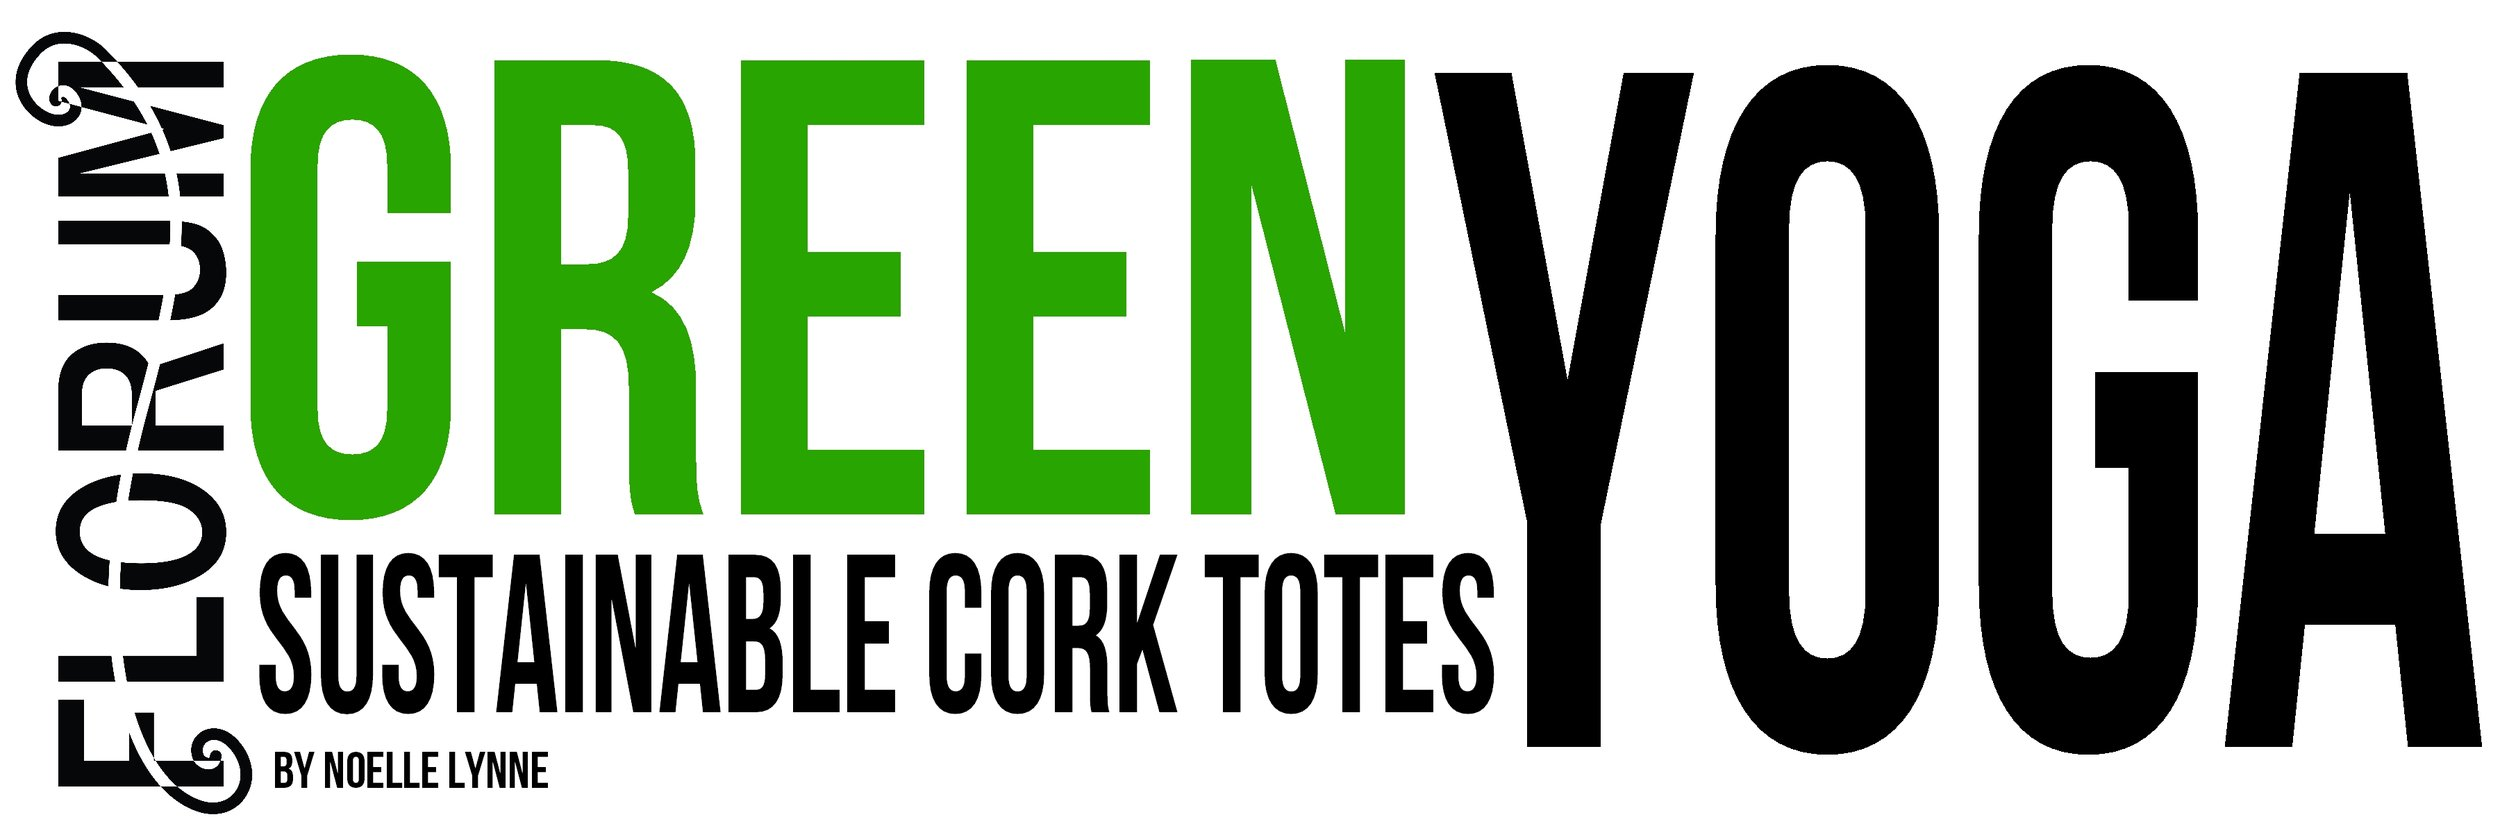 Green Yoga - Eco Totes - Sustainable - cork - recycled - By Noelle Lynne - Florum Fashion Magazine - ONO Creations